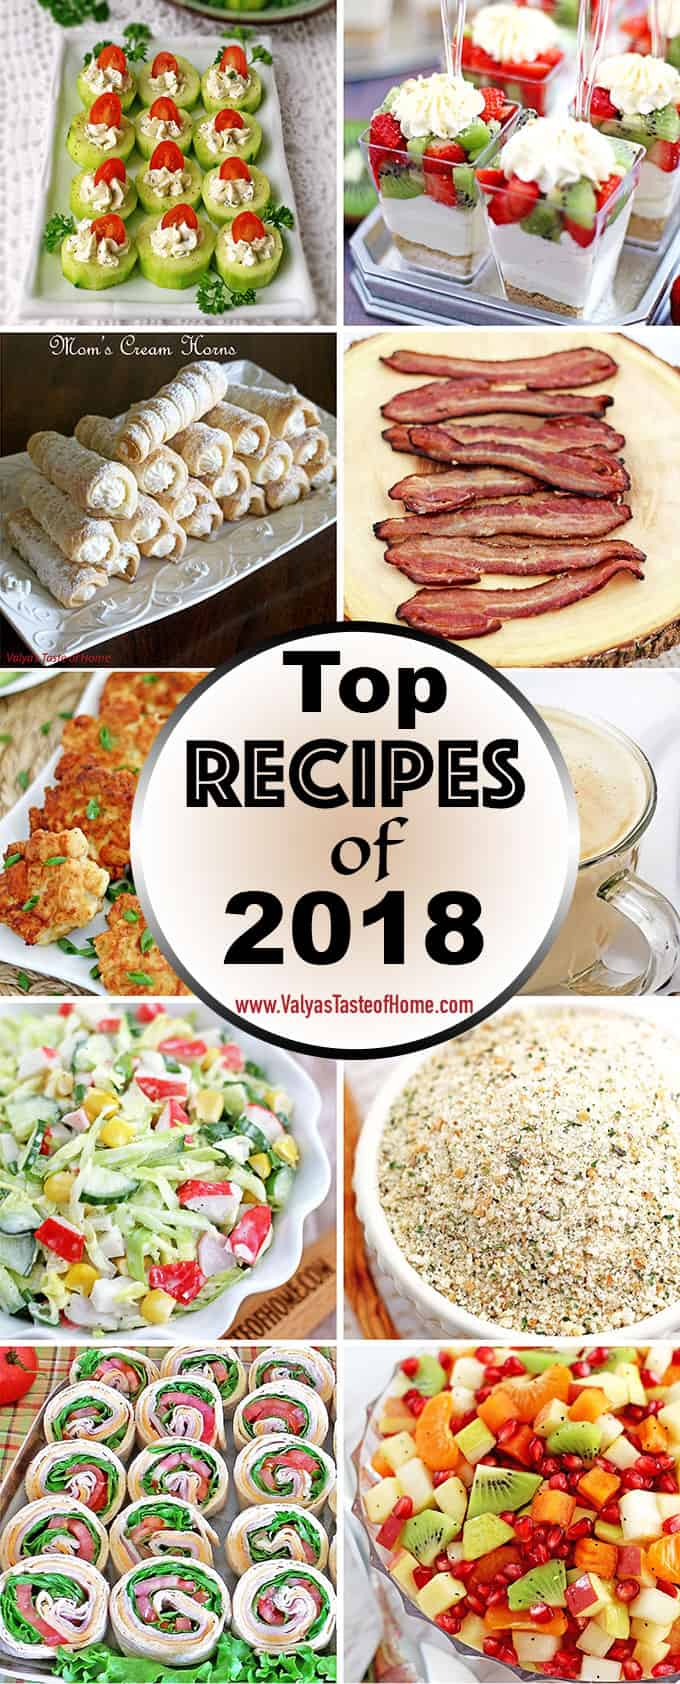 These are the Top 10 most popular recipes on the blog of 2018 year made by you my dear family, friends, and followers! I really appreciate all of your participation in making and sharing my recipes with your family and loved ones, your kindness, input, and comments! It has been a great year and that is due to all of you. Without you, it would be impossible to do what I love. Thank you very much for all your love and support!